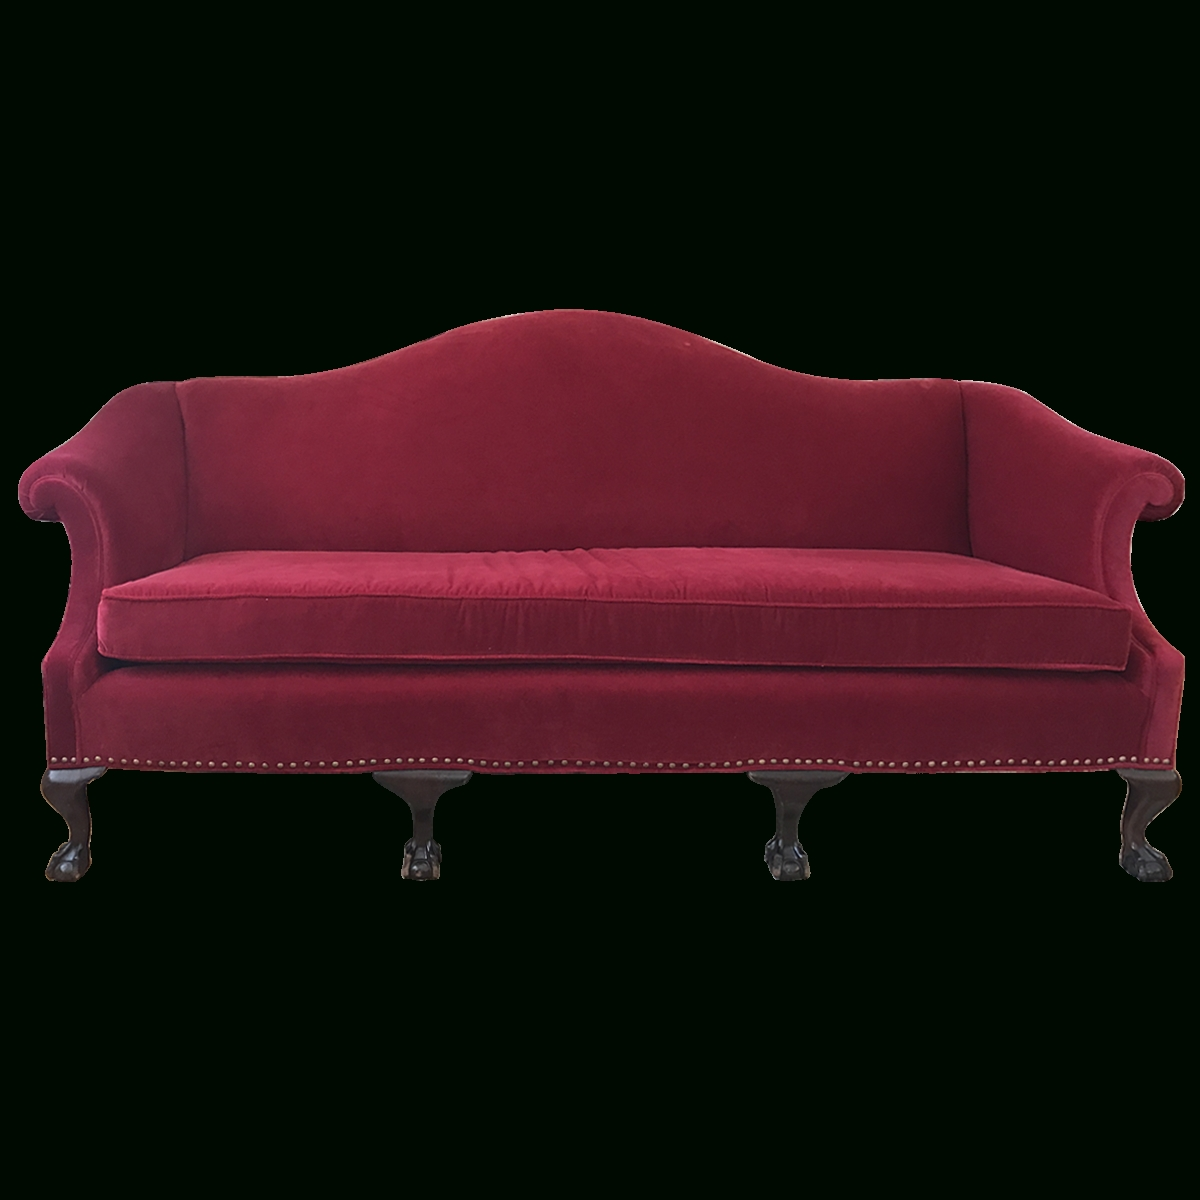 Viyet - Designer Furniture - Seating - Antique Chippendale Style intended for Chippendale Camelback Sofas